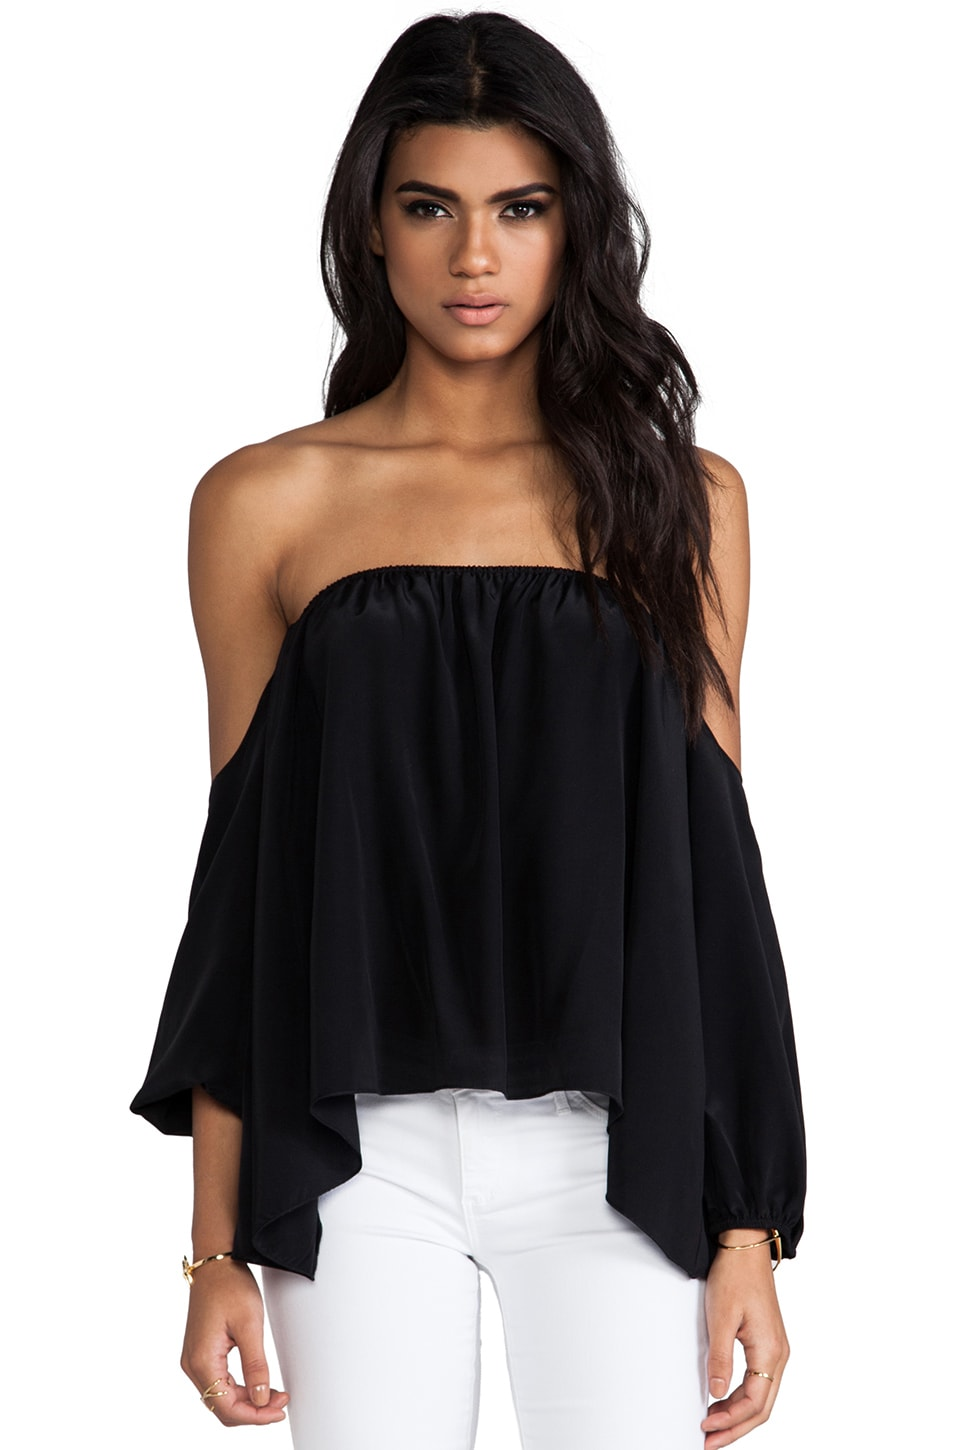 Boulee Audrey Top in Black